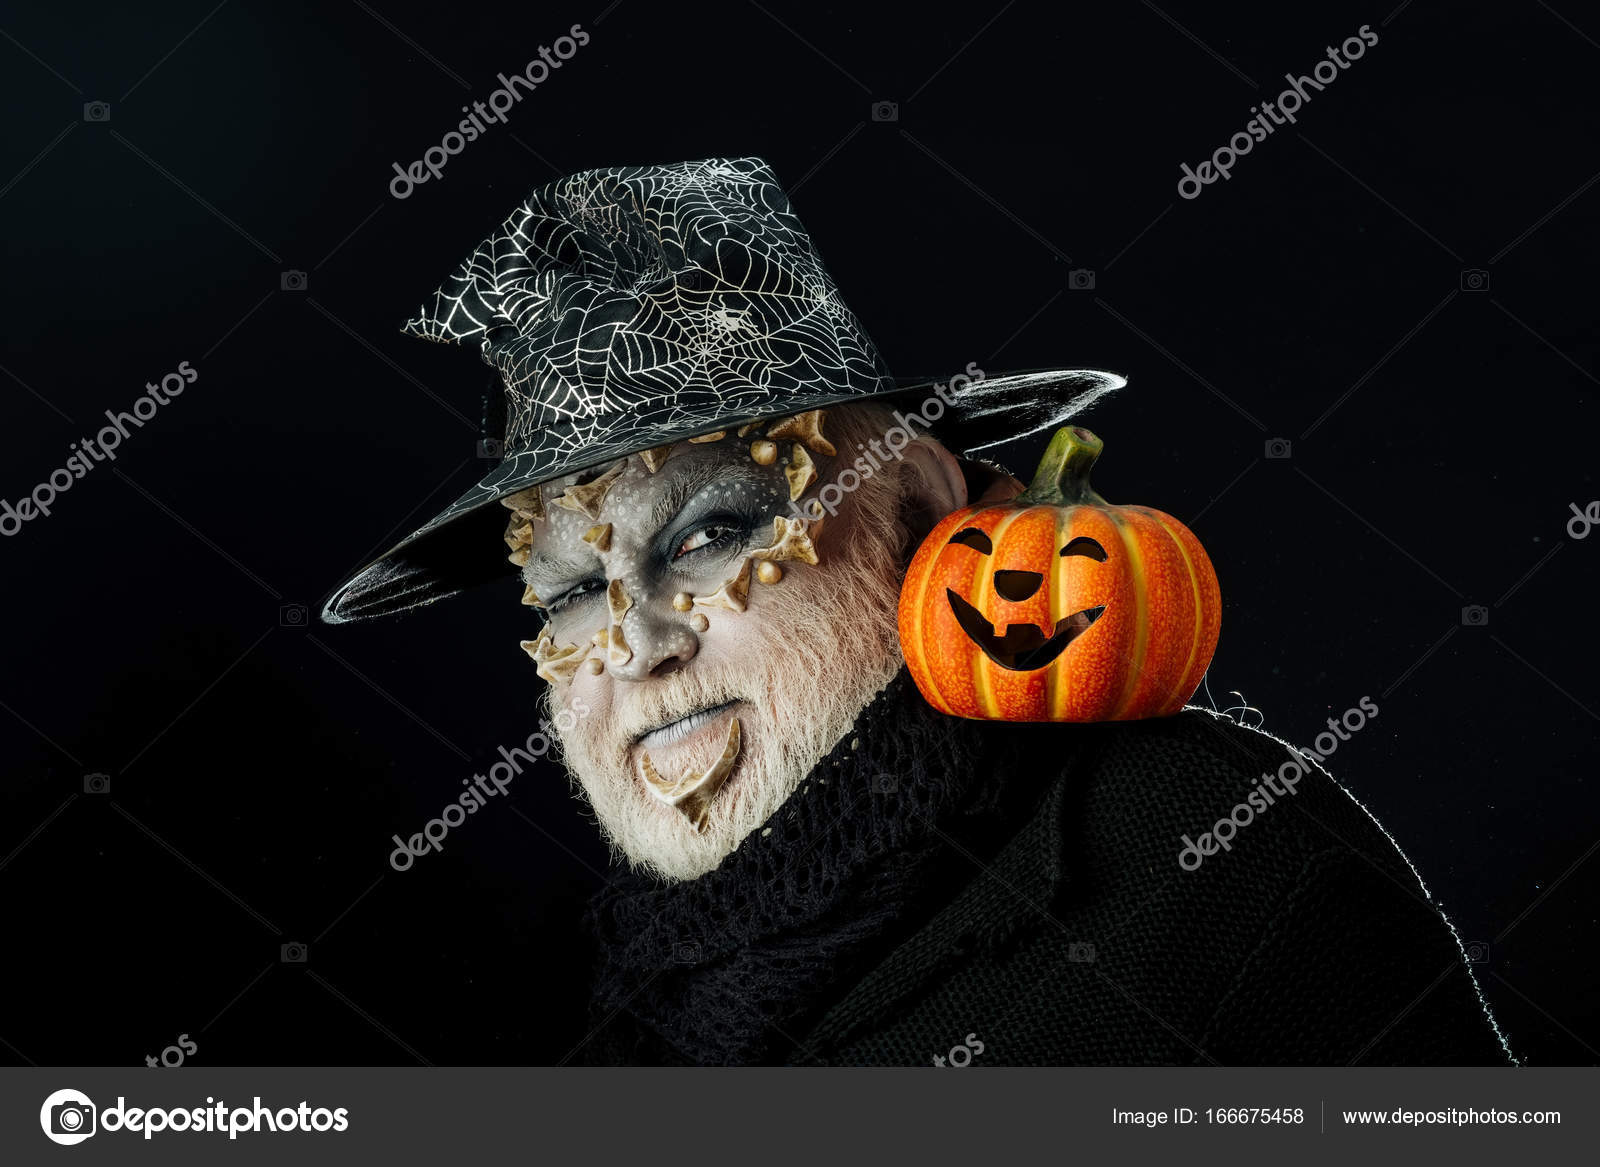 Halloween Maan.Halloween Man Scary Pumpkin And Thorns On Face Stock Photo